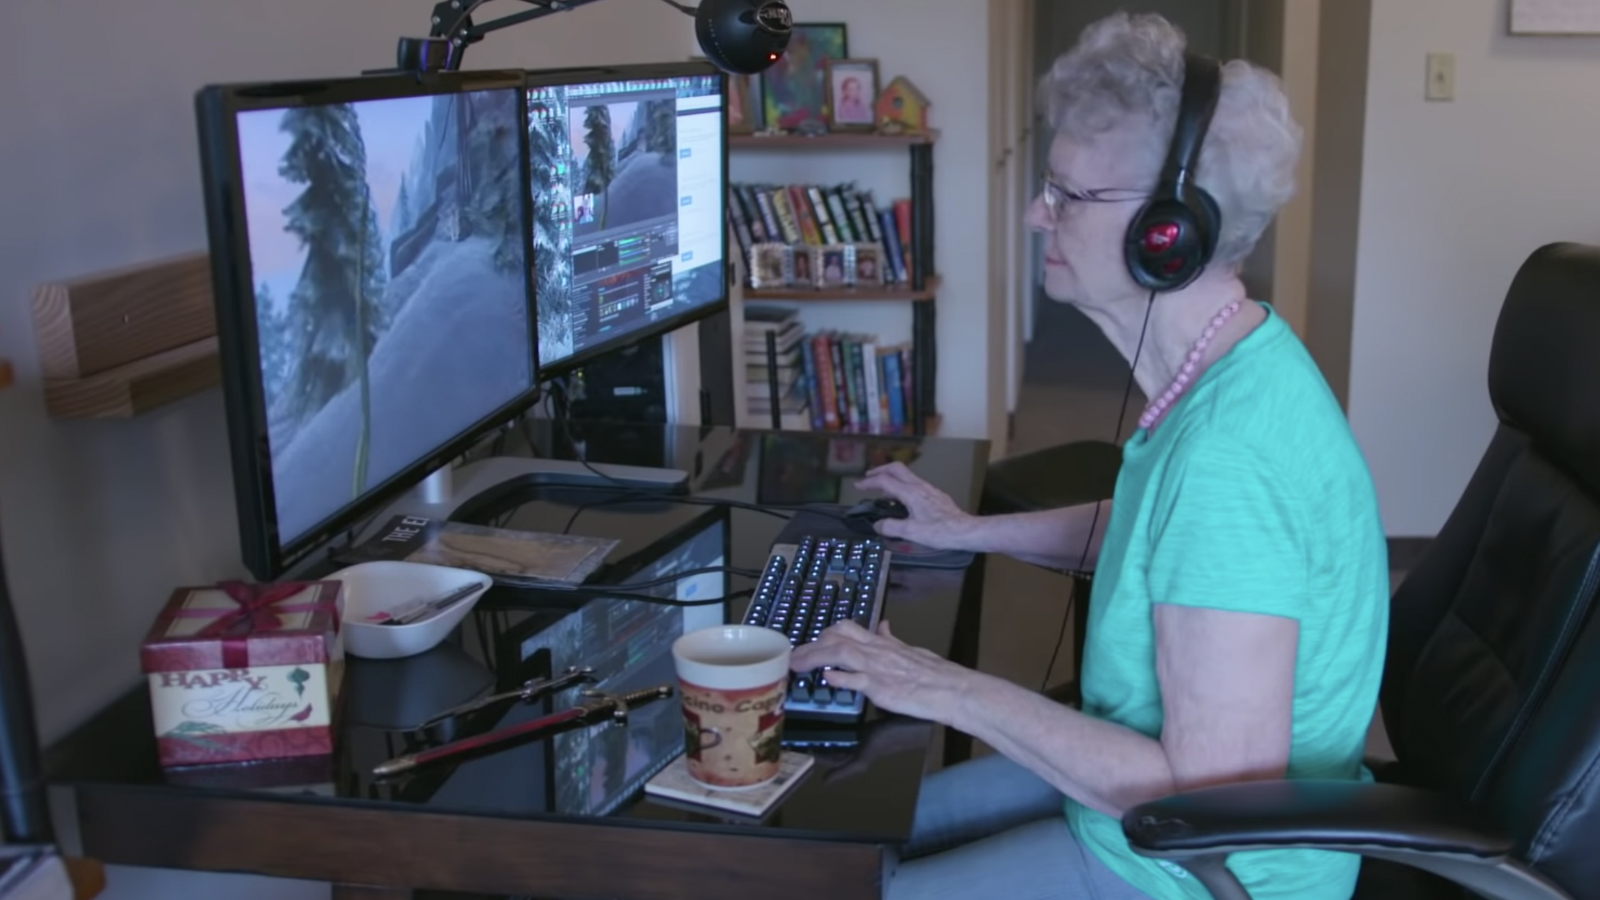 Grandma playing Skyrim